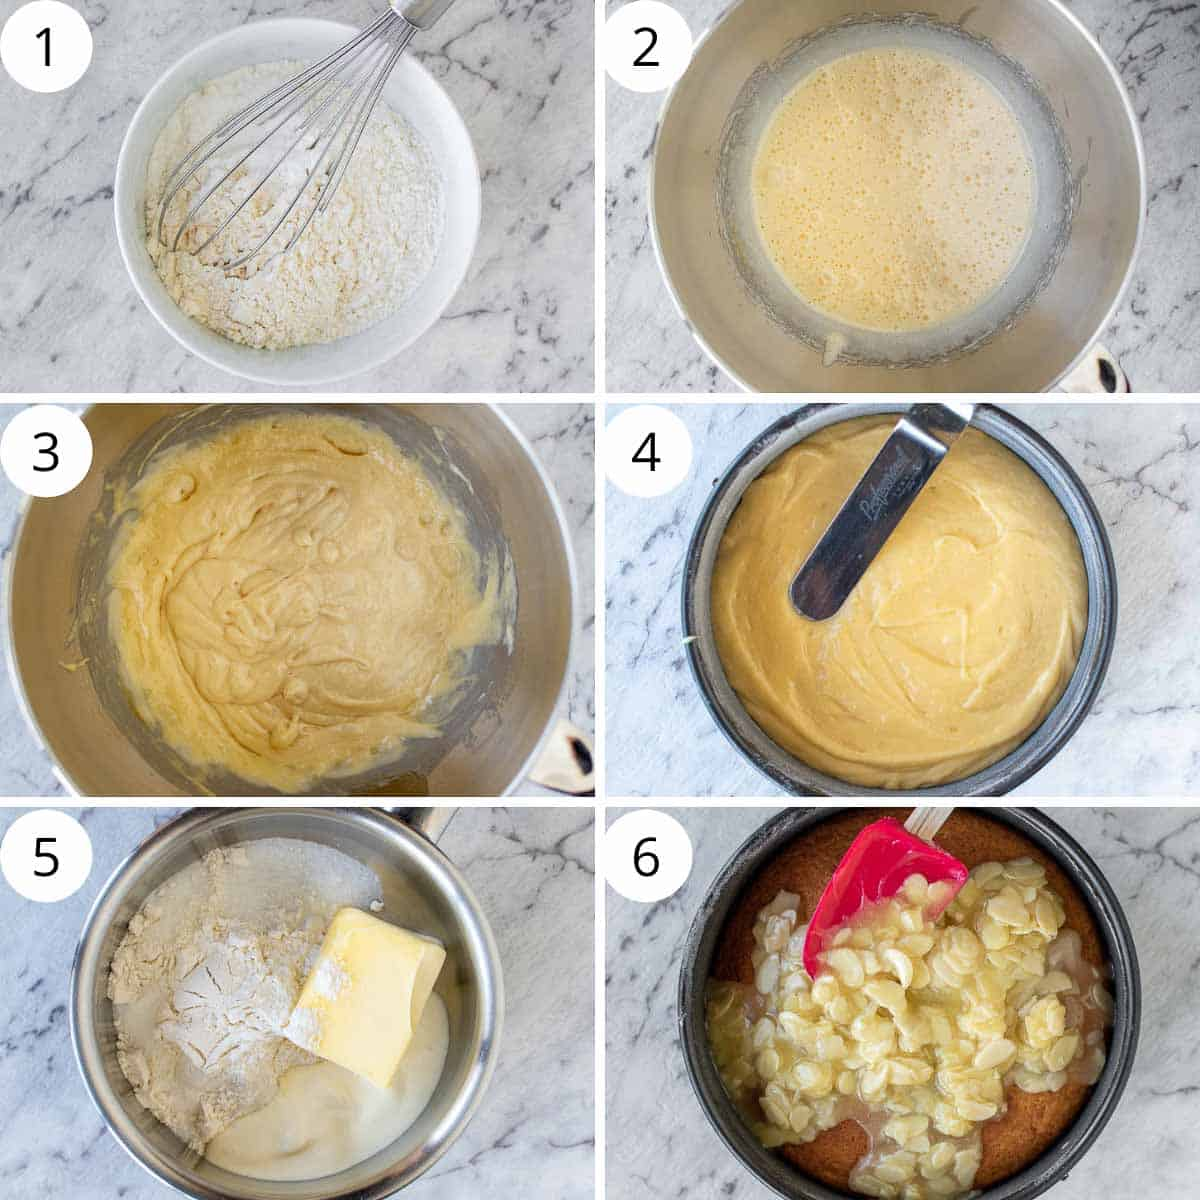 6 step photo collage showing how to make tosca cake